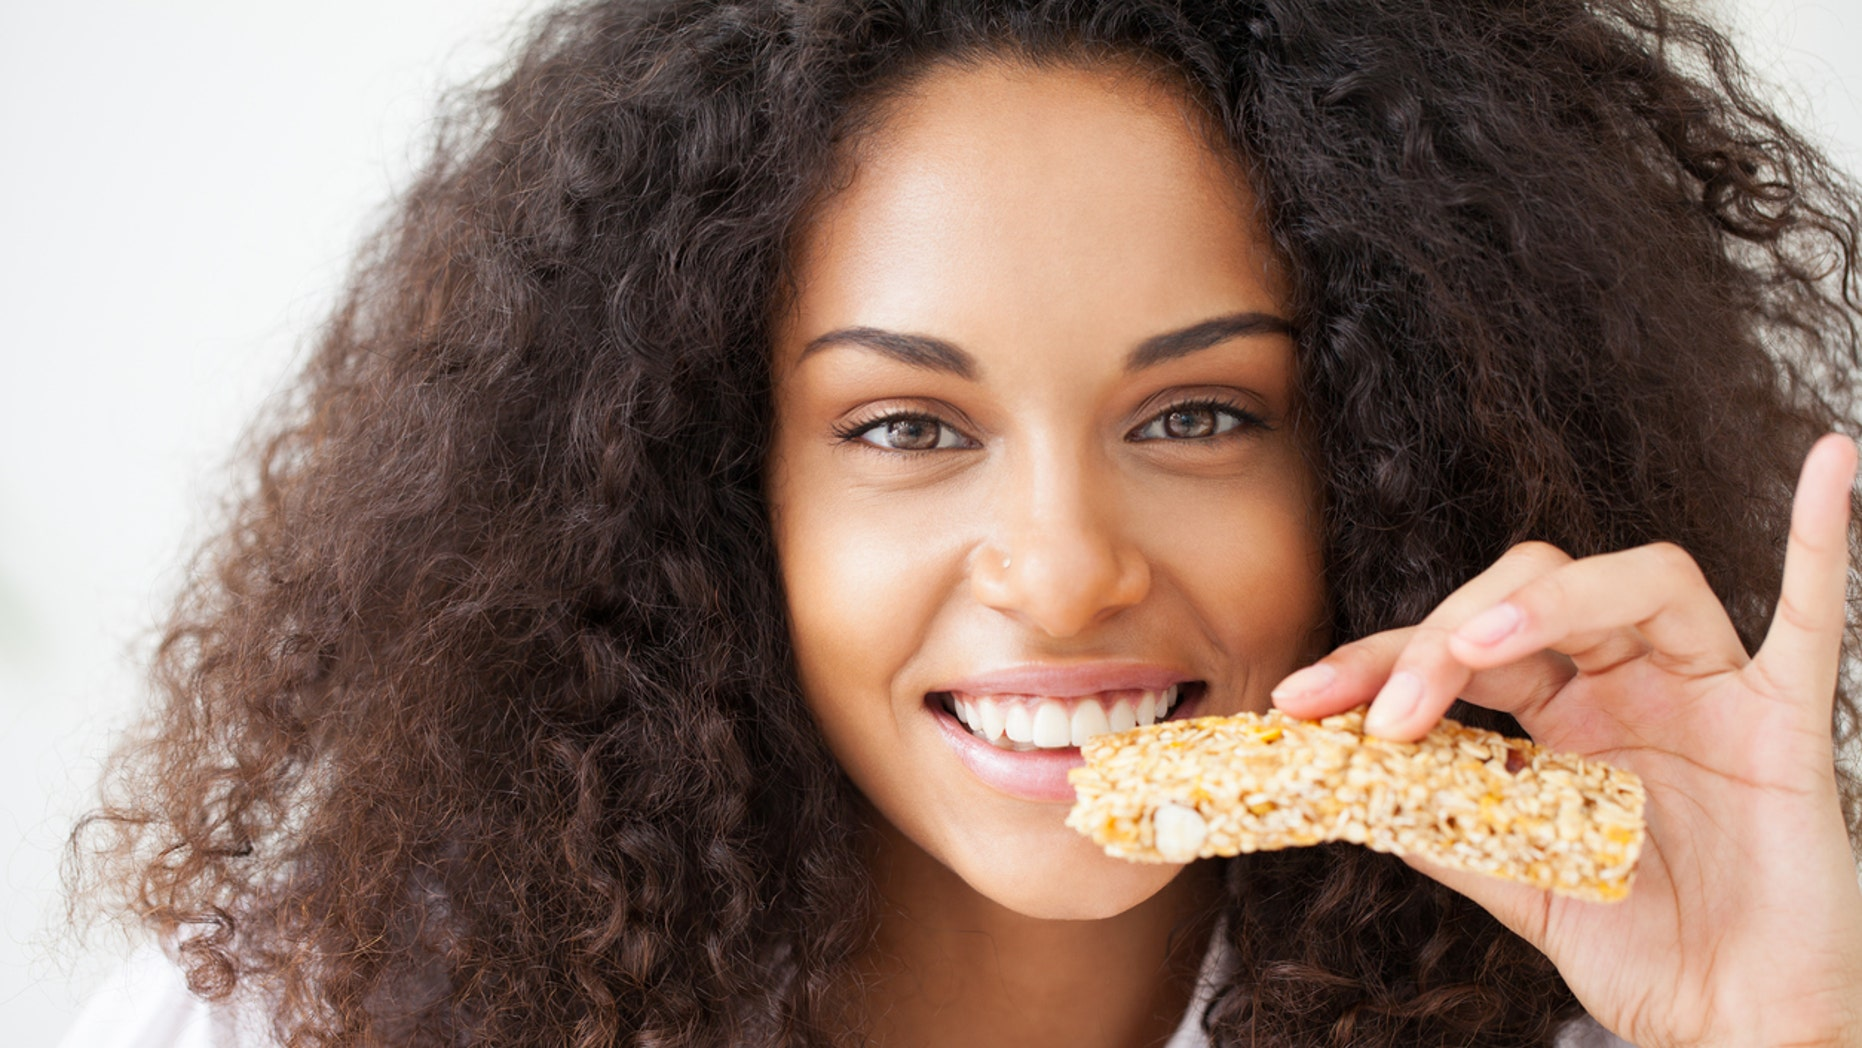 Young woman about to eat a healthy snack.